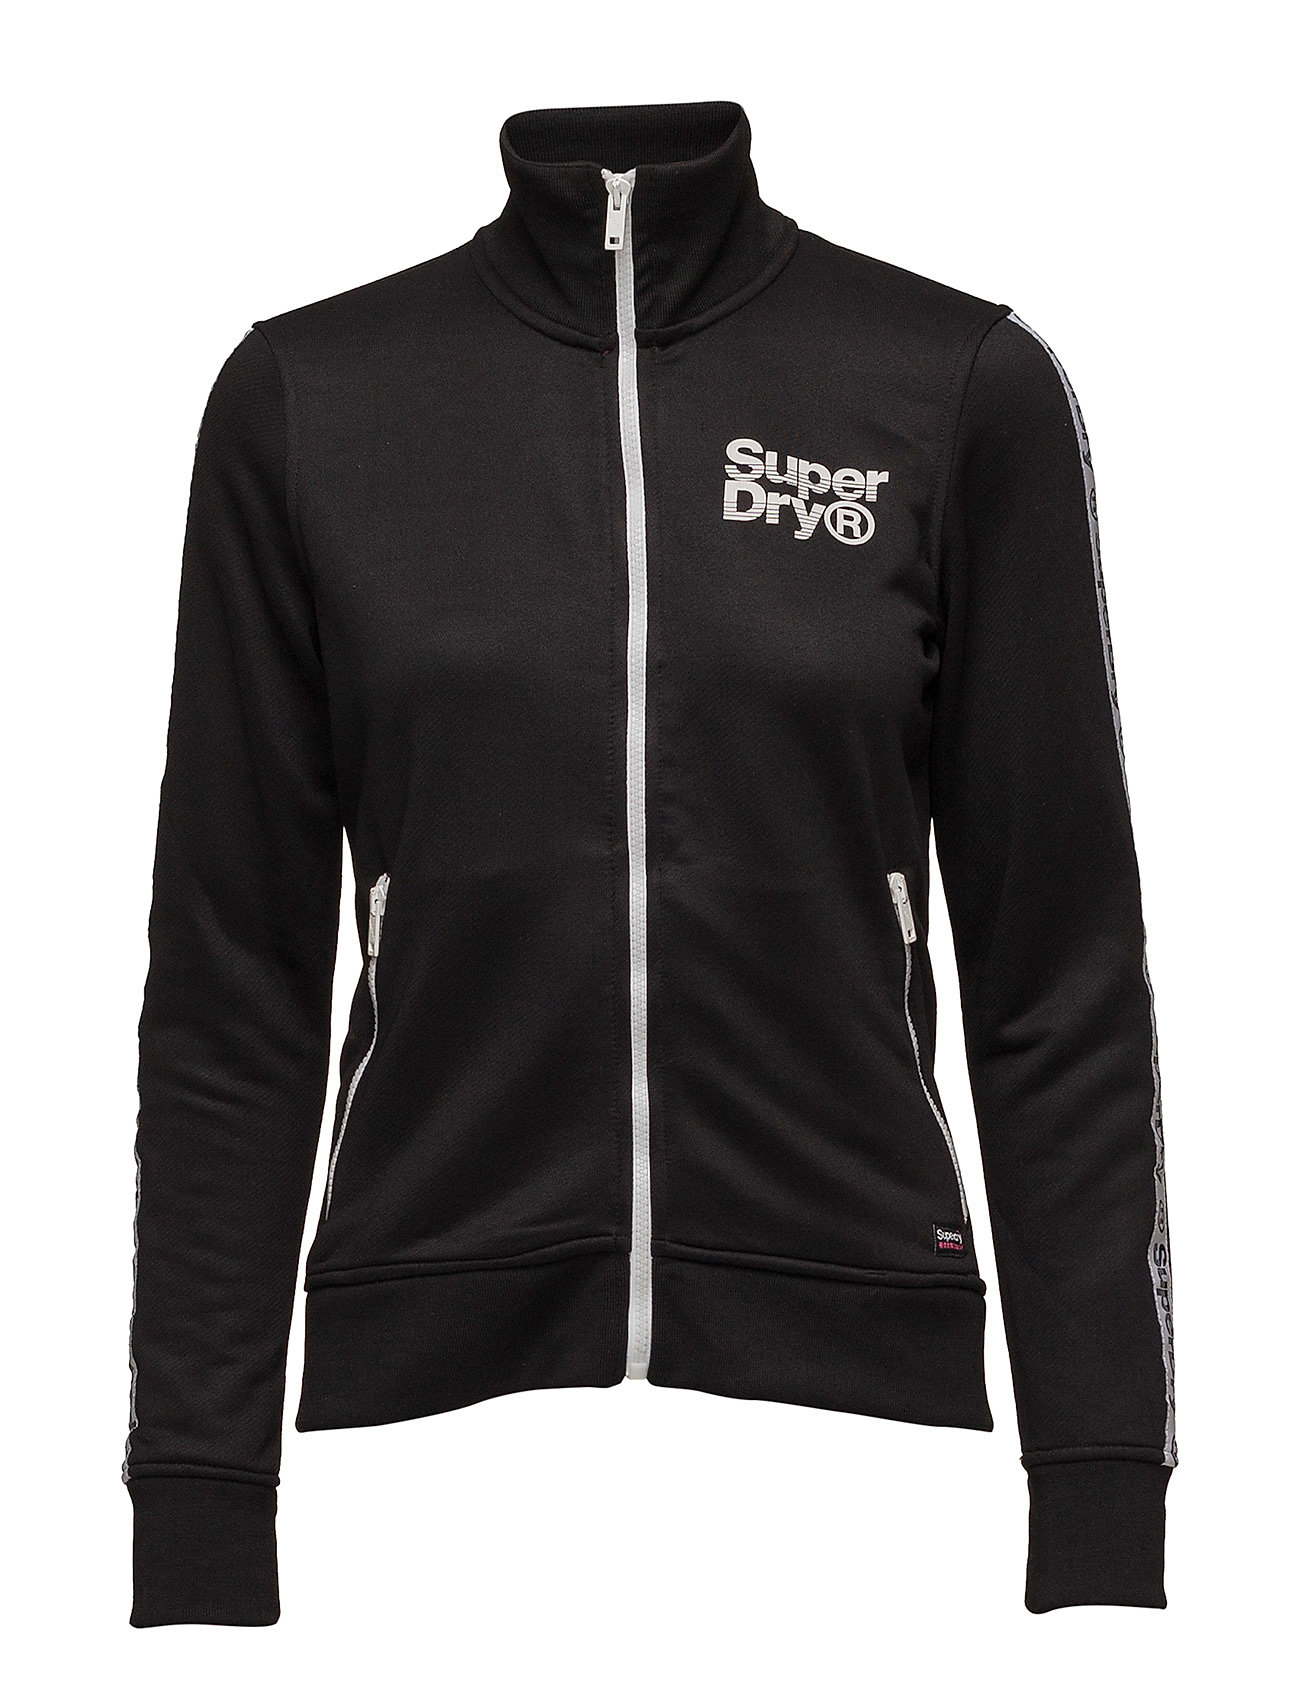 Superdry FASHION FITNESS TRIC TRACK TOP - BLACK